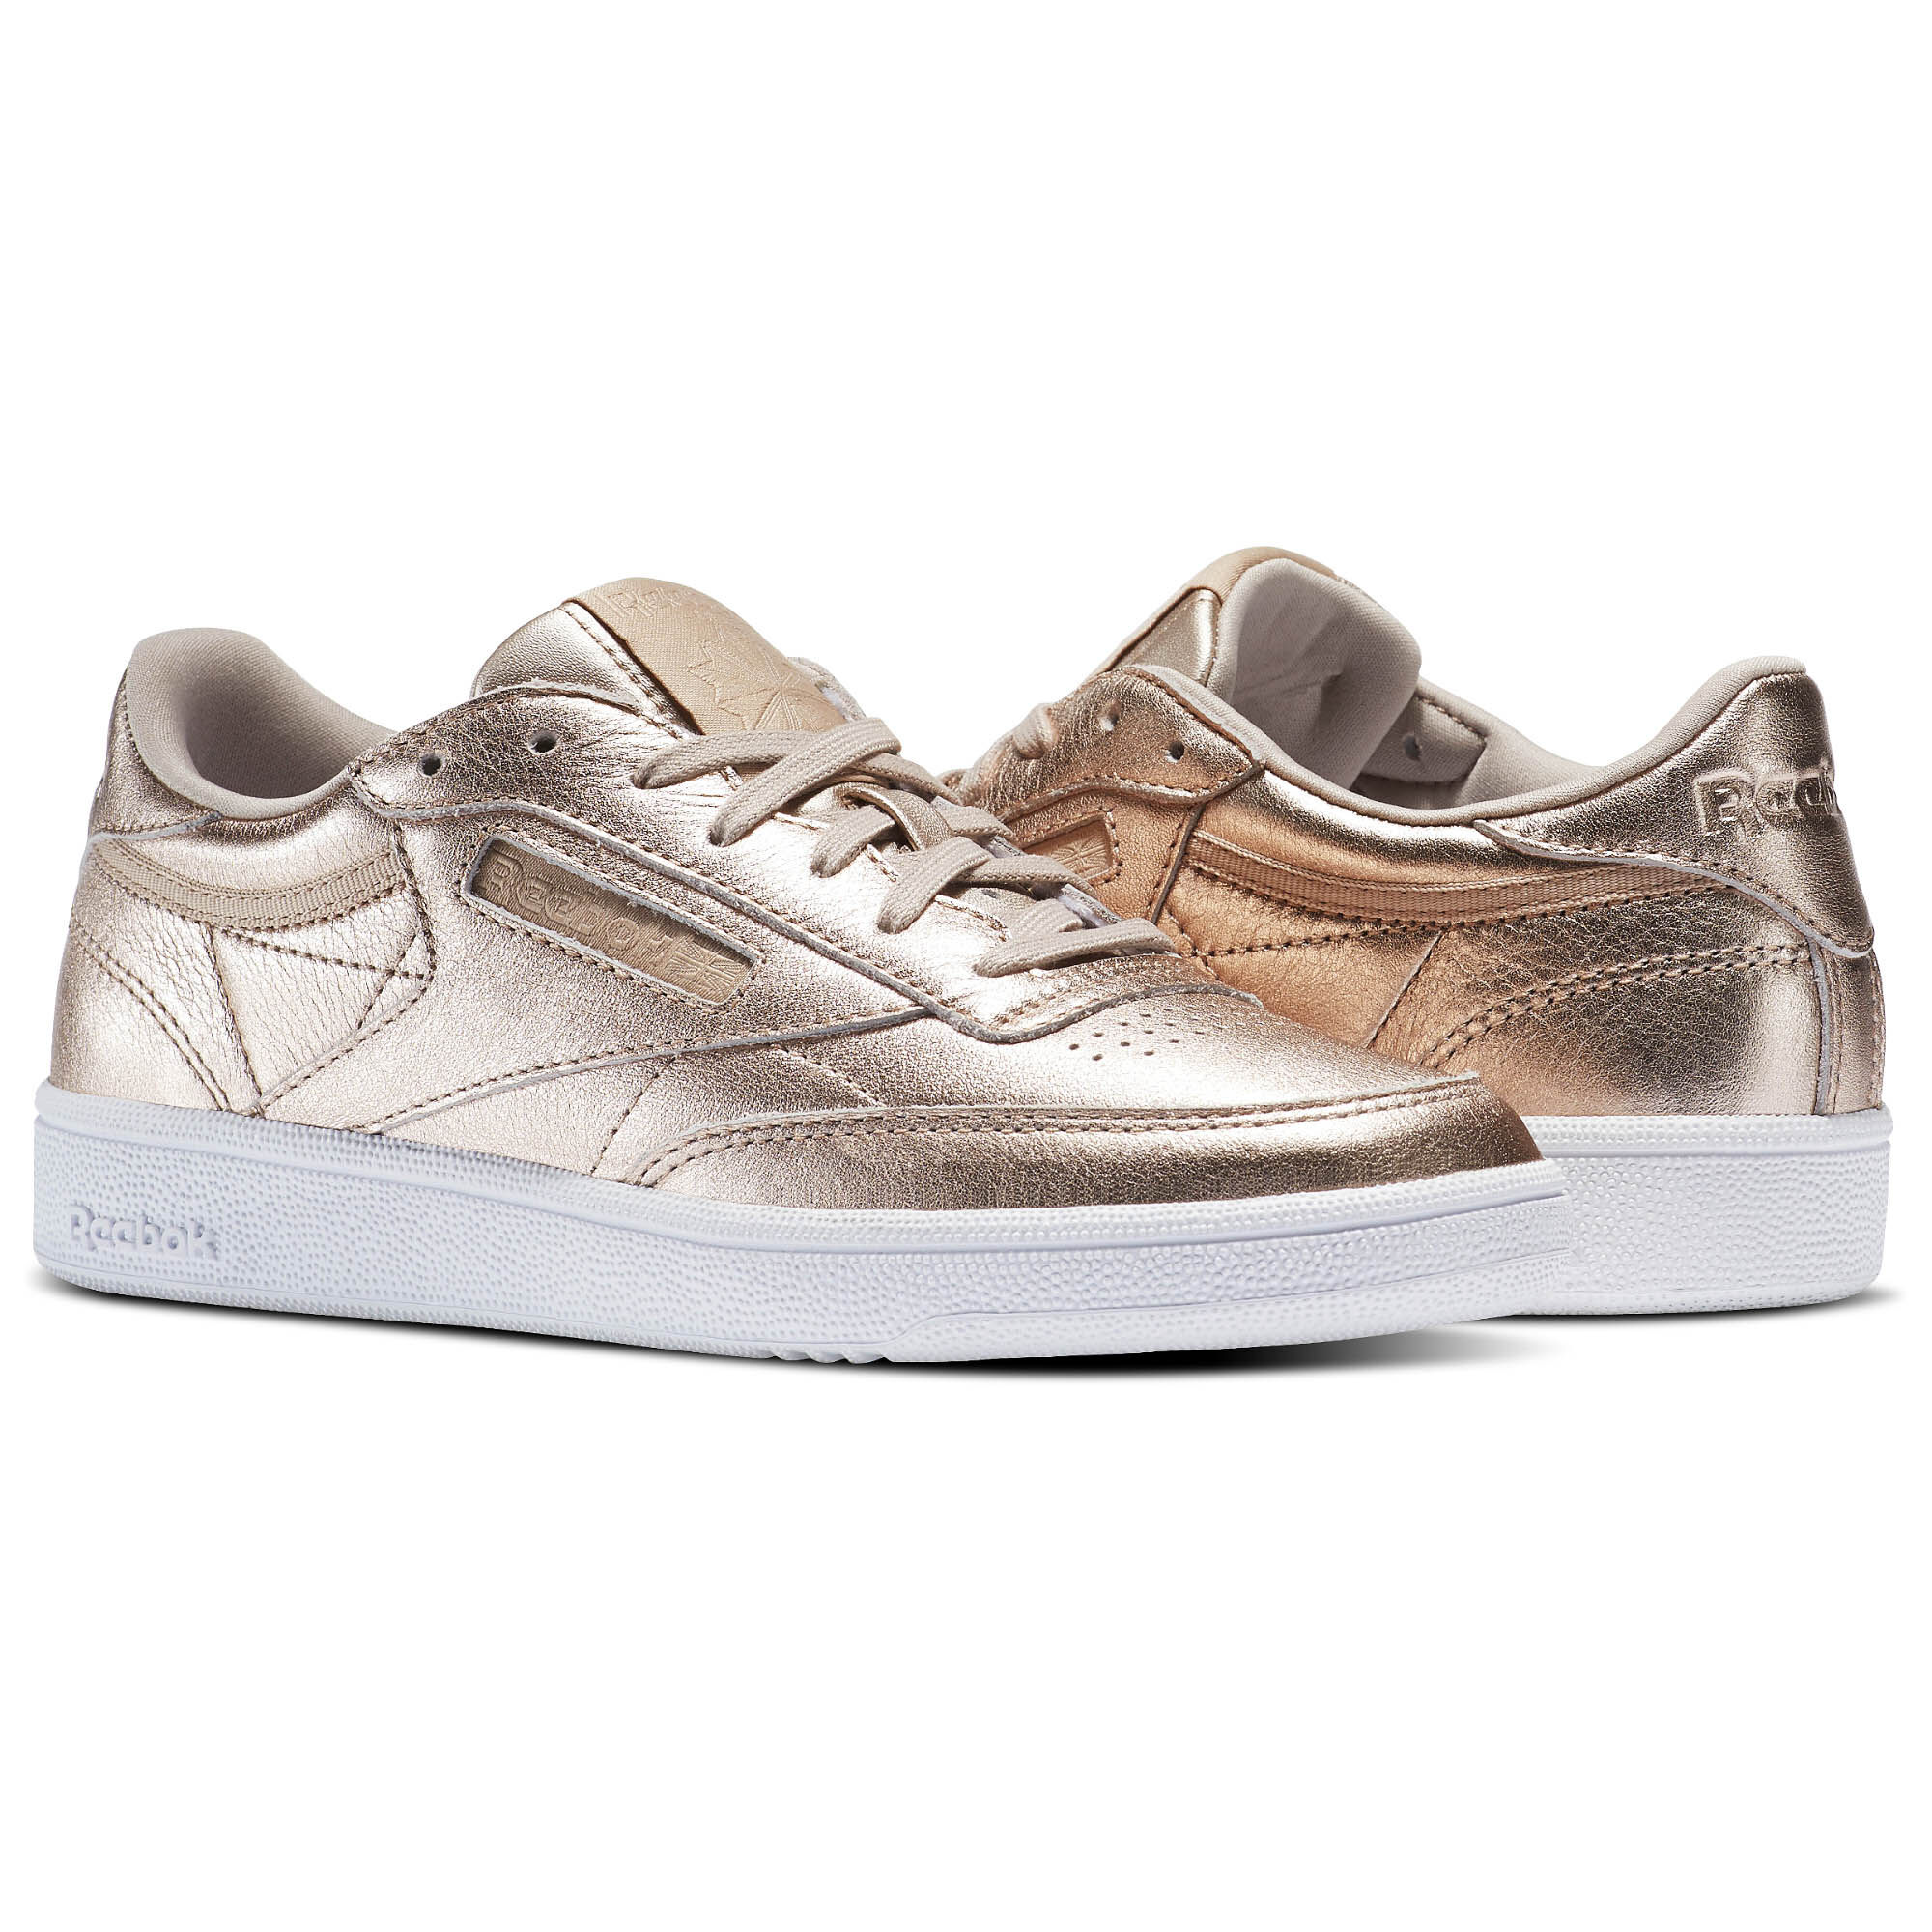 CLUB C 85 HYPE META - FOOTWEAR - Low-tops & sneakers Reebok CvCfRy79